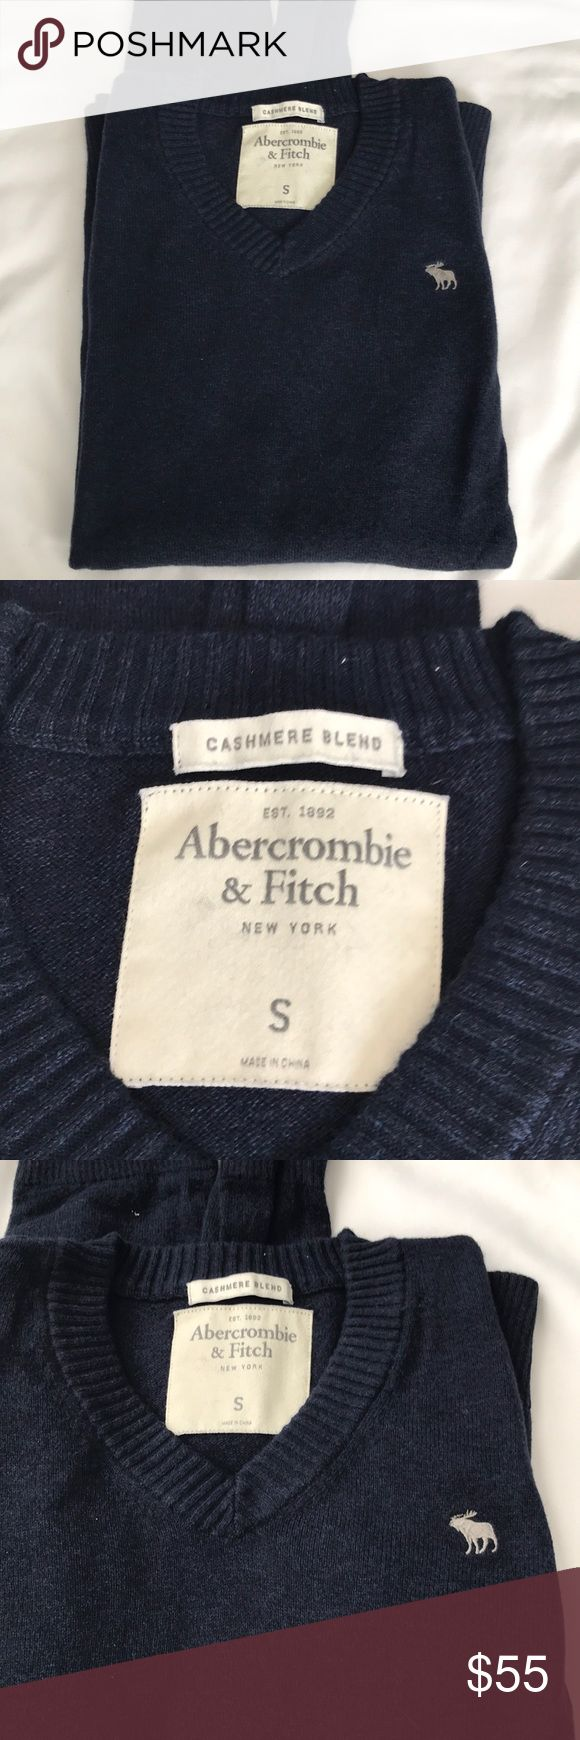 Abercrombie & Fitch Cashmere Sweater Men Small Abercrombie & Fitch Cashmere Bland Sweater Men Small  From far away look like a darker blue but up close you can see a litter blue and purple mixed in. Super soft and in great condition. Abercrombie & Fitch Sweaters V-Neck